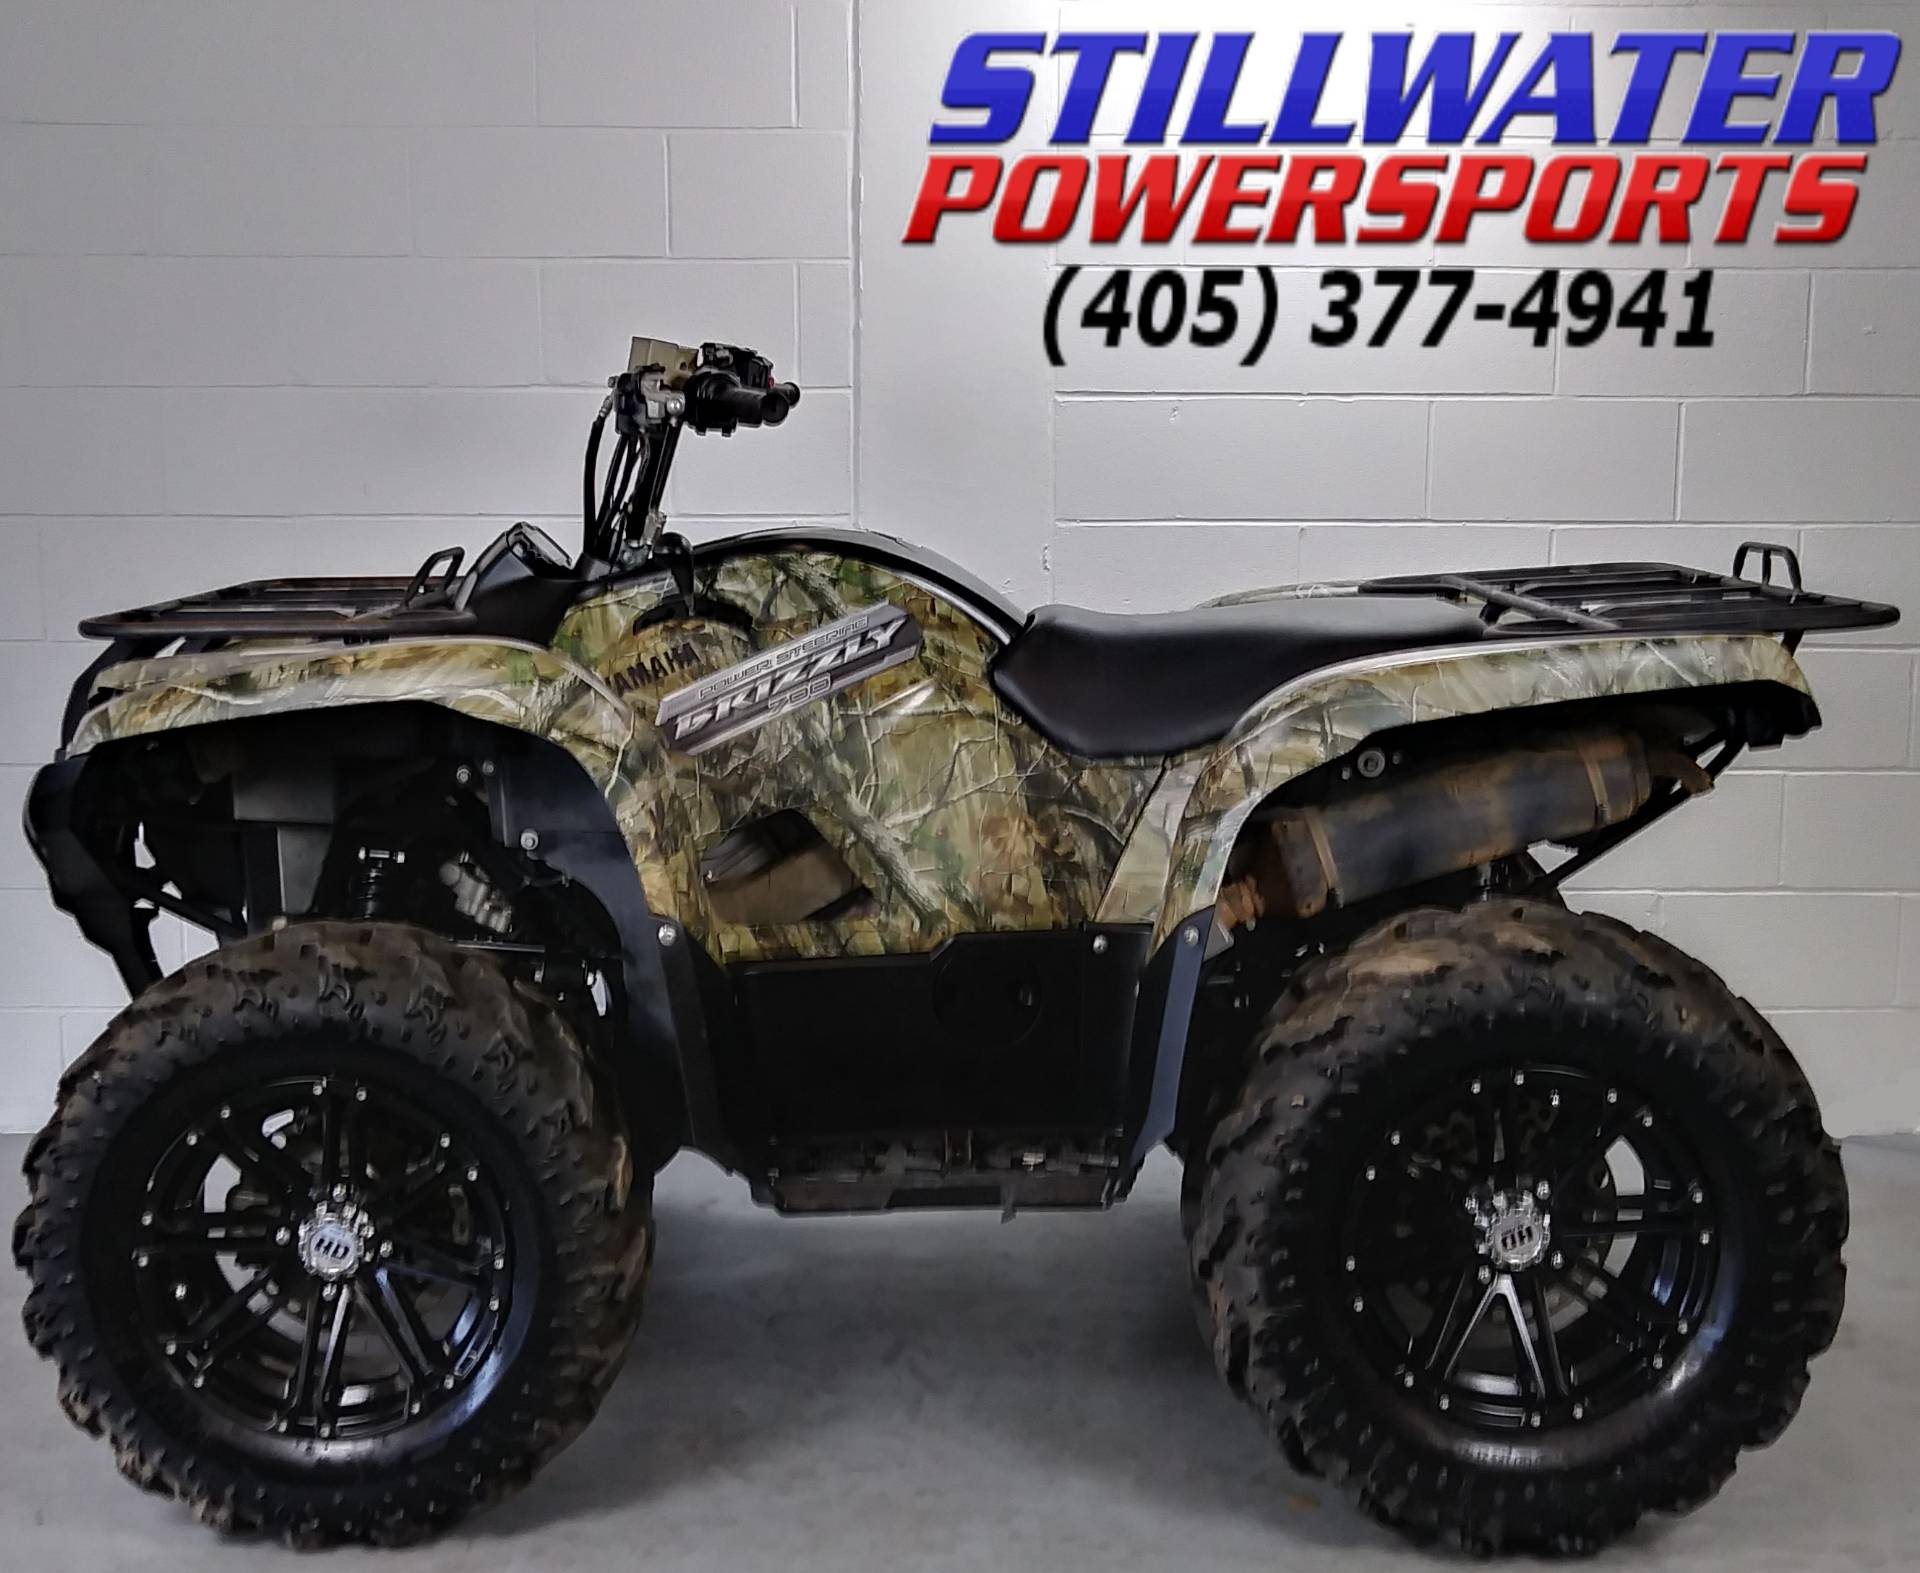 2013 Yamaha Grizzly 700 FI Auto. 4x4 EPS in Stillwater, Oklahoma - Photo 6